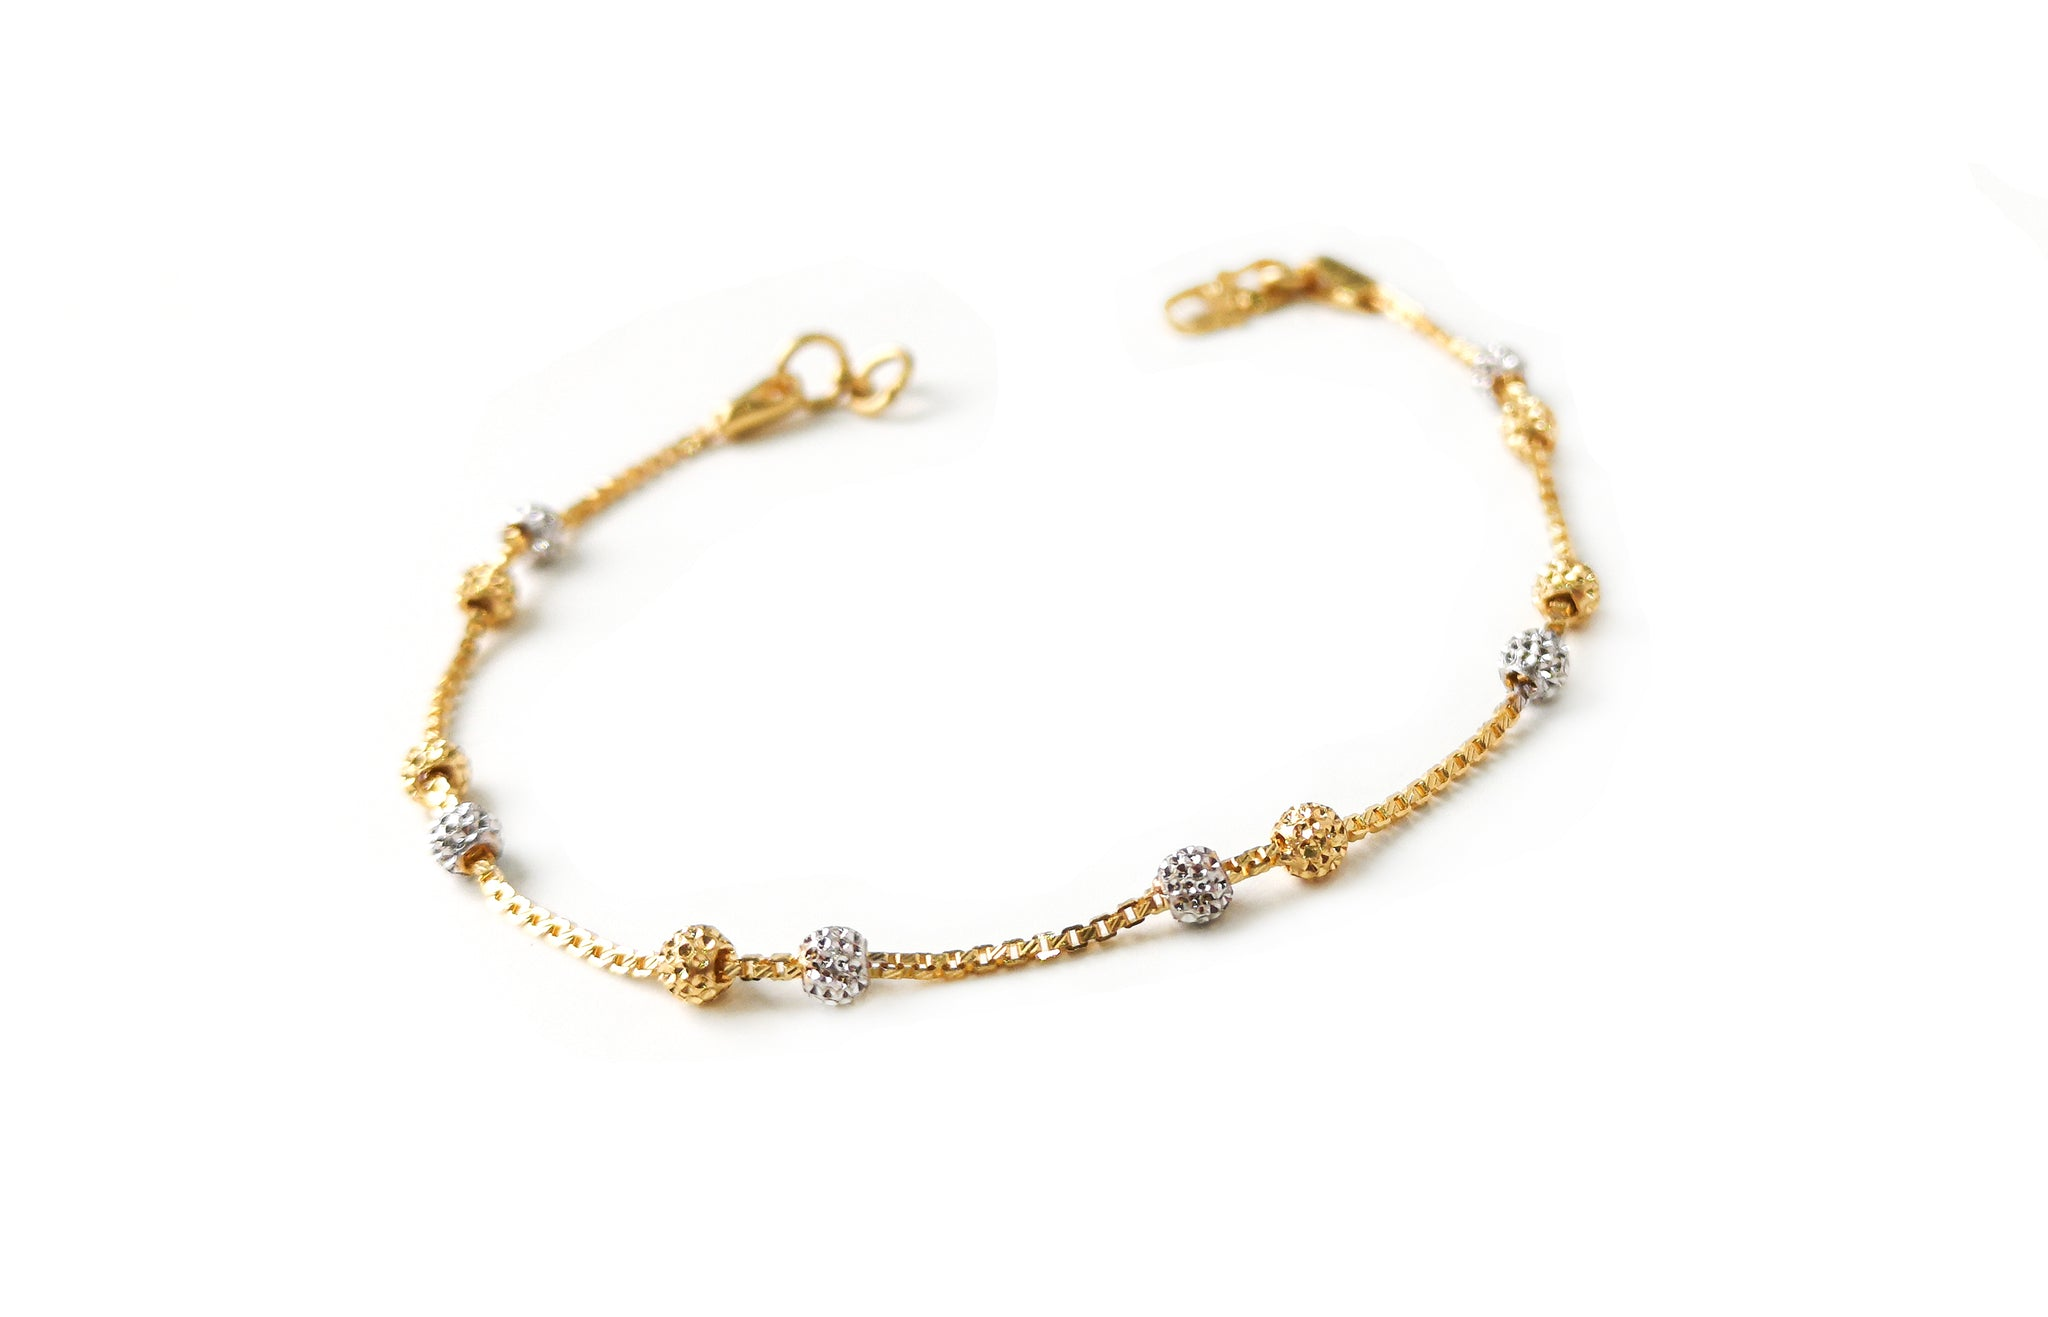 22ct Gold Bracelet with Diamond Cut and Rhodium Design (3.6g) LBR-7666